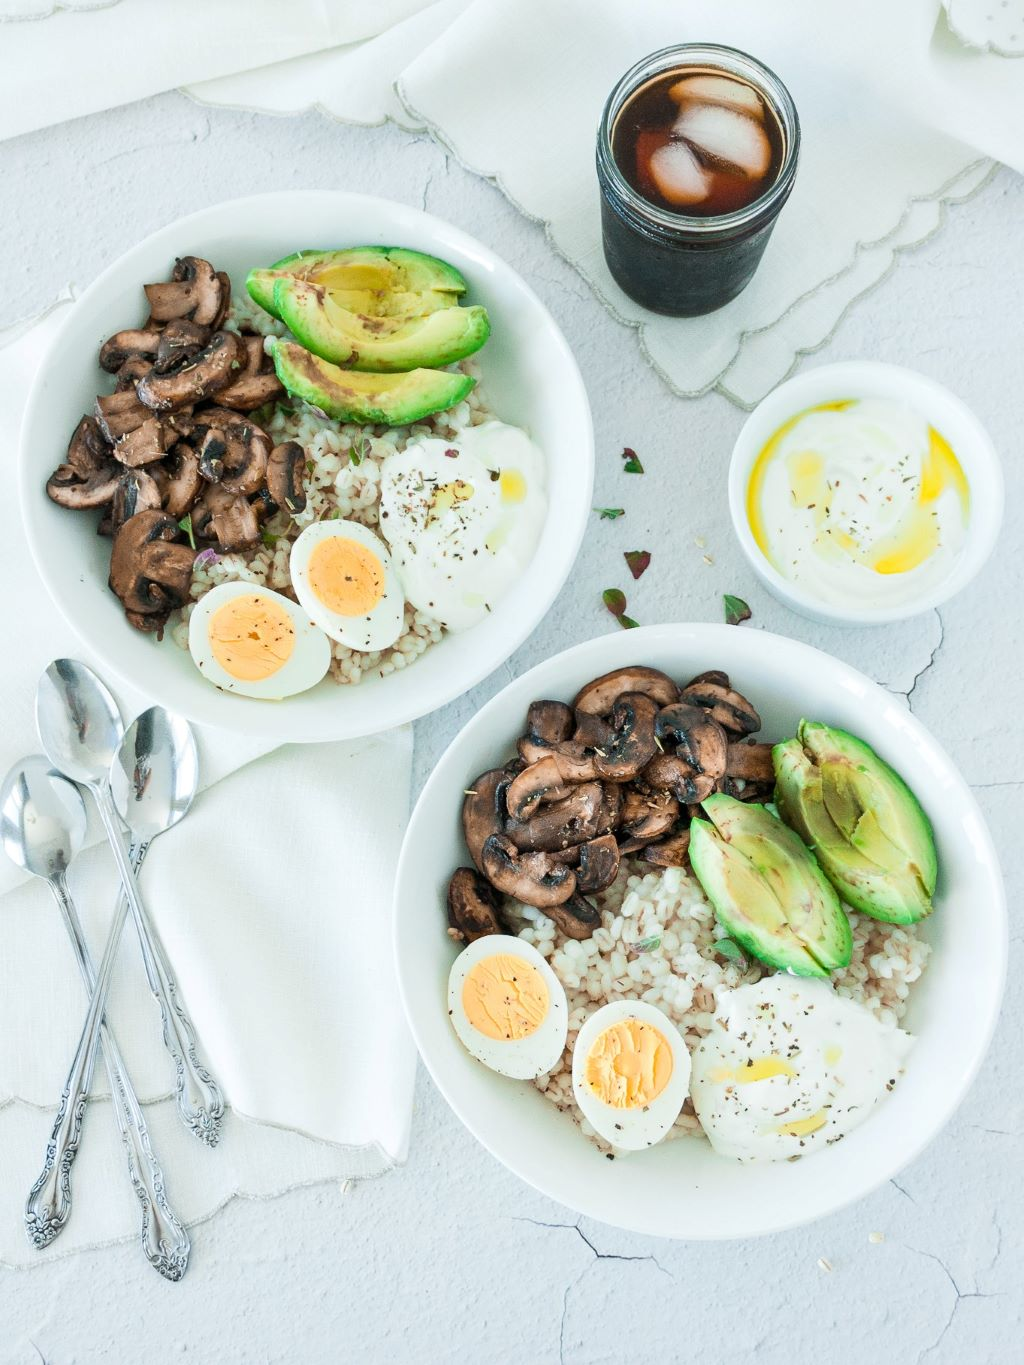 Savory Barley Breakfast Bowl